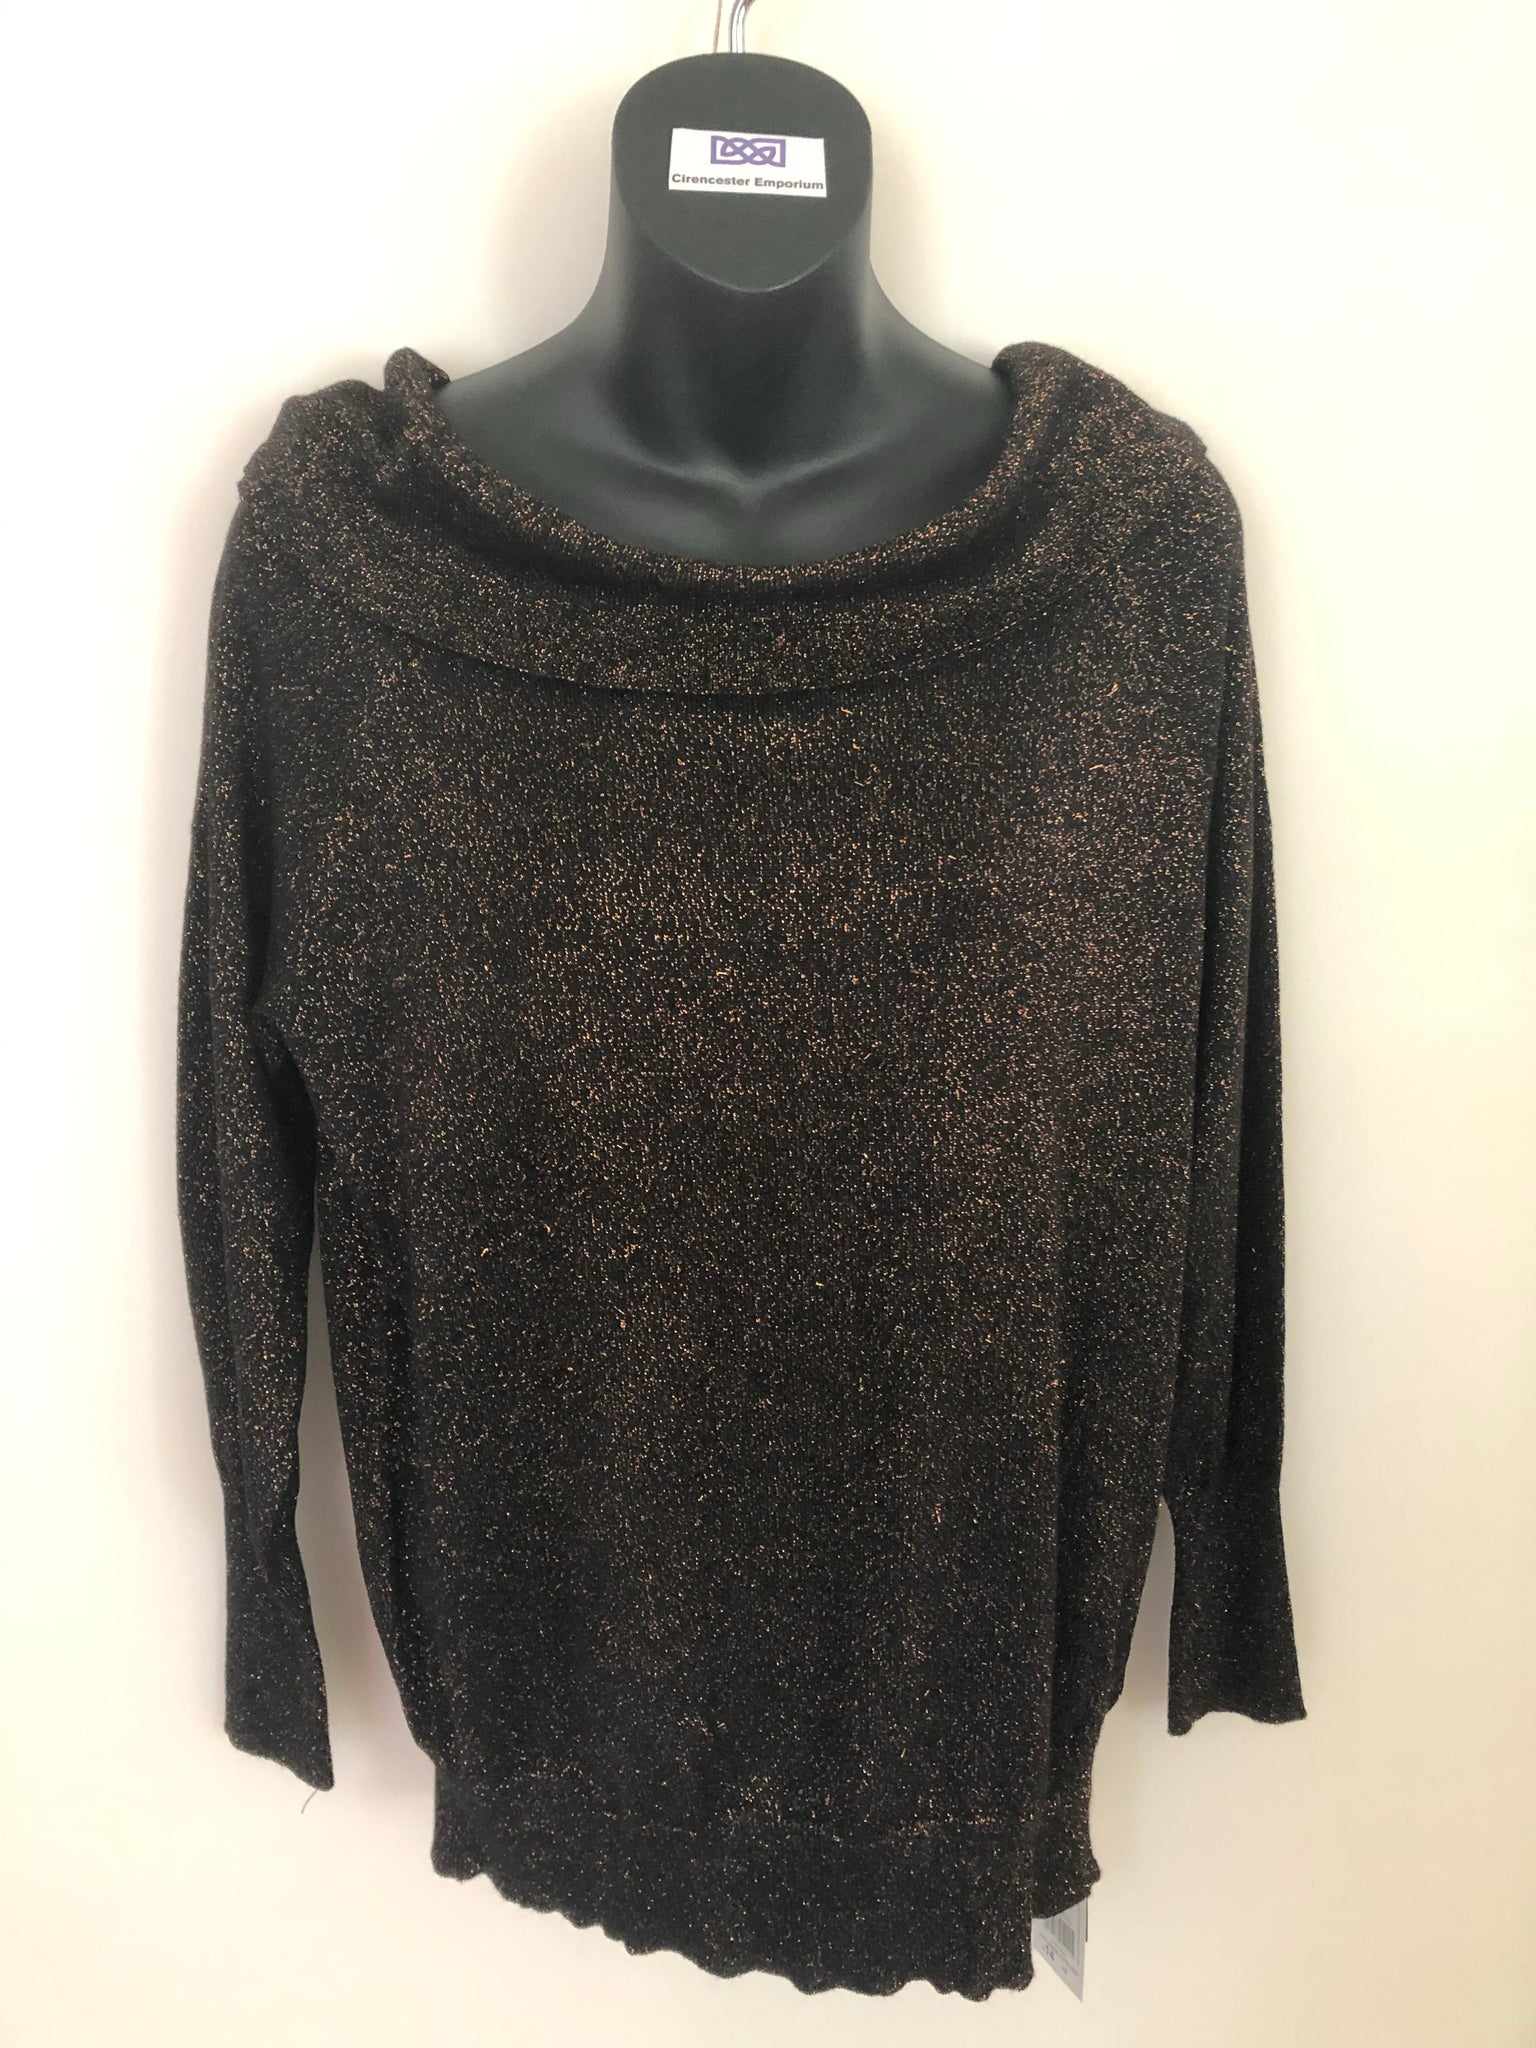 Size 16 F&F Black Gold Sparkle Knitted Top  New Tagged